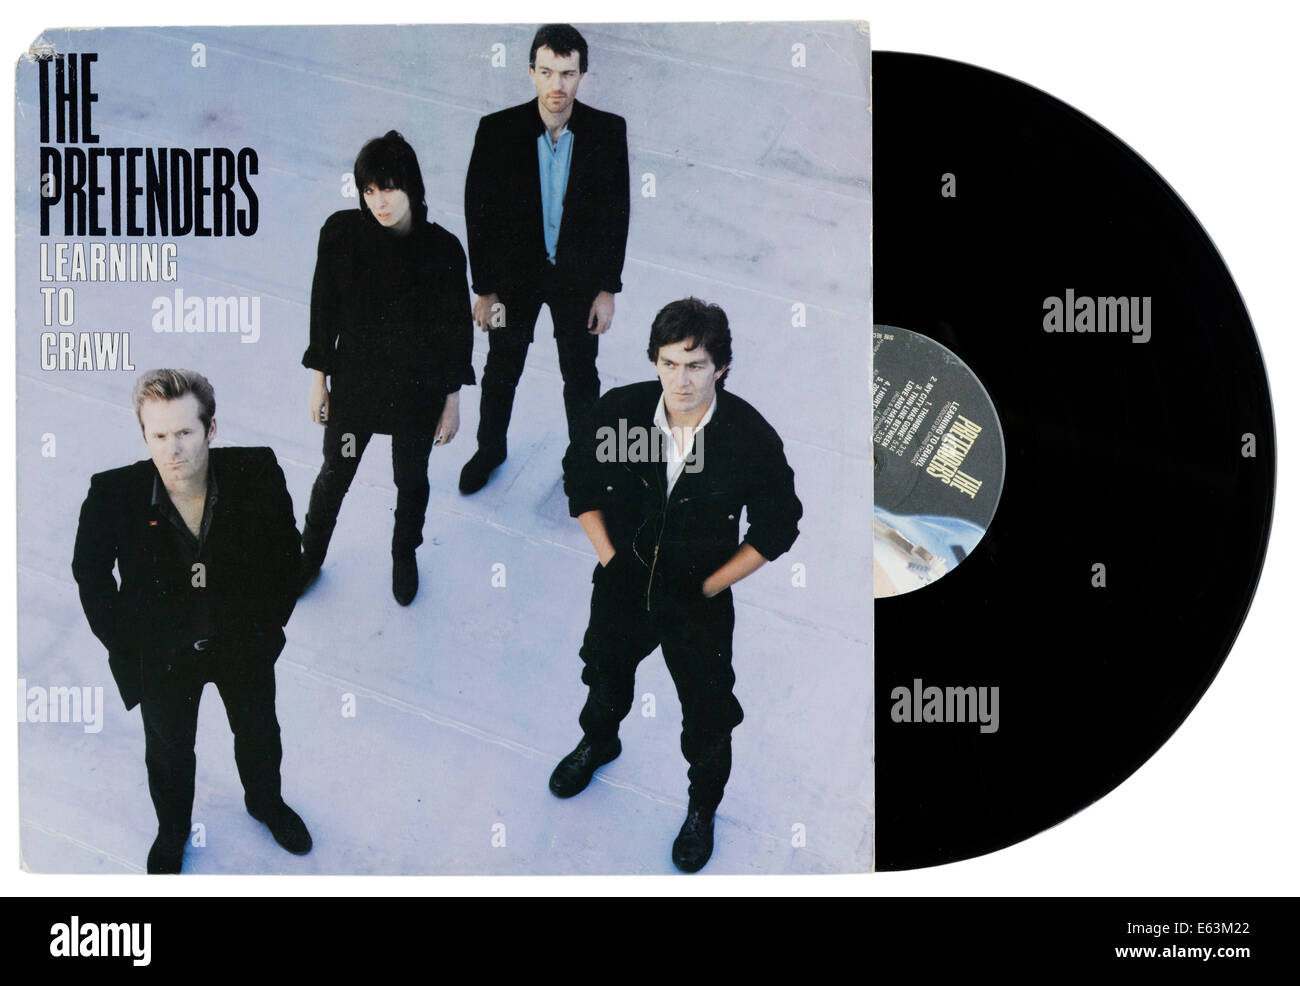 The Pretenders Learning to Crawl album - Stock Image